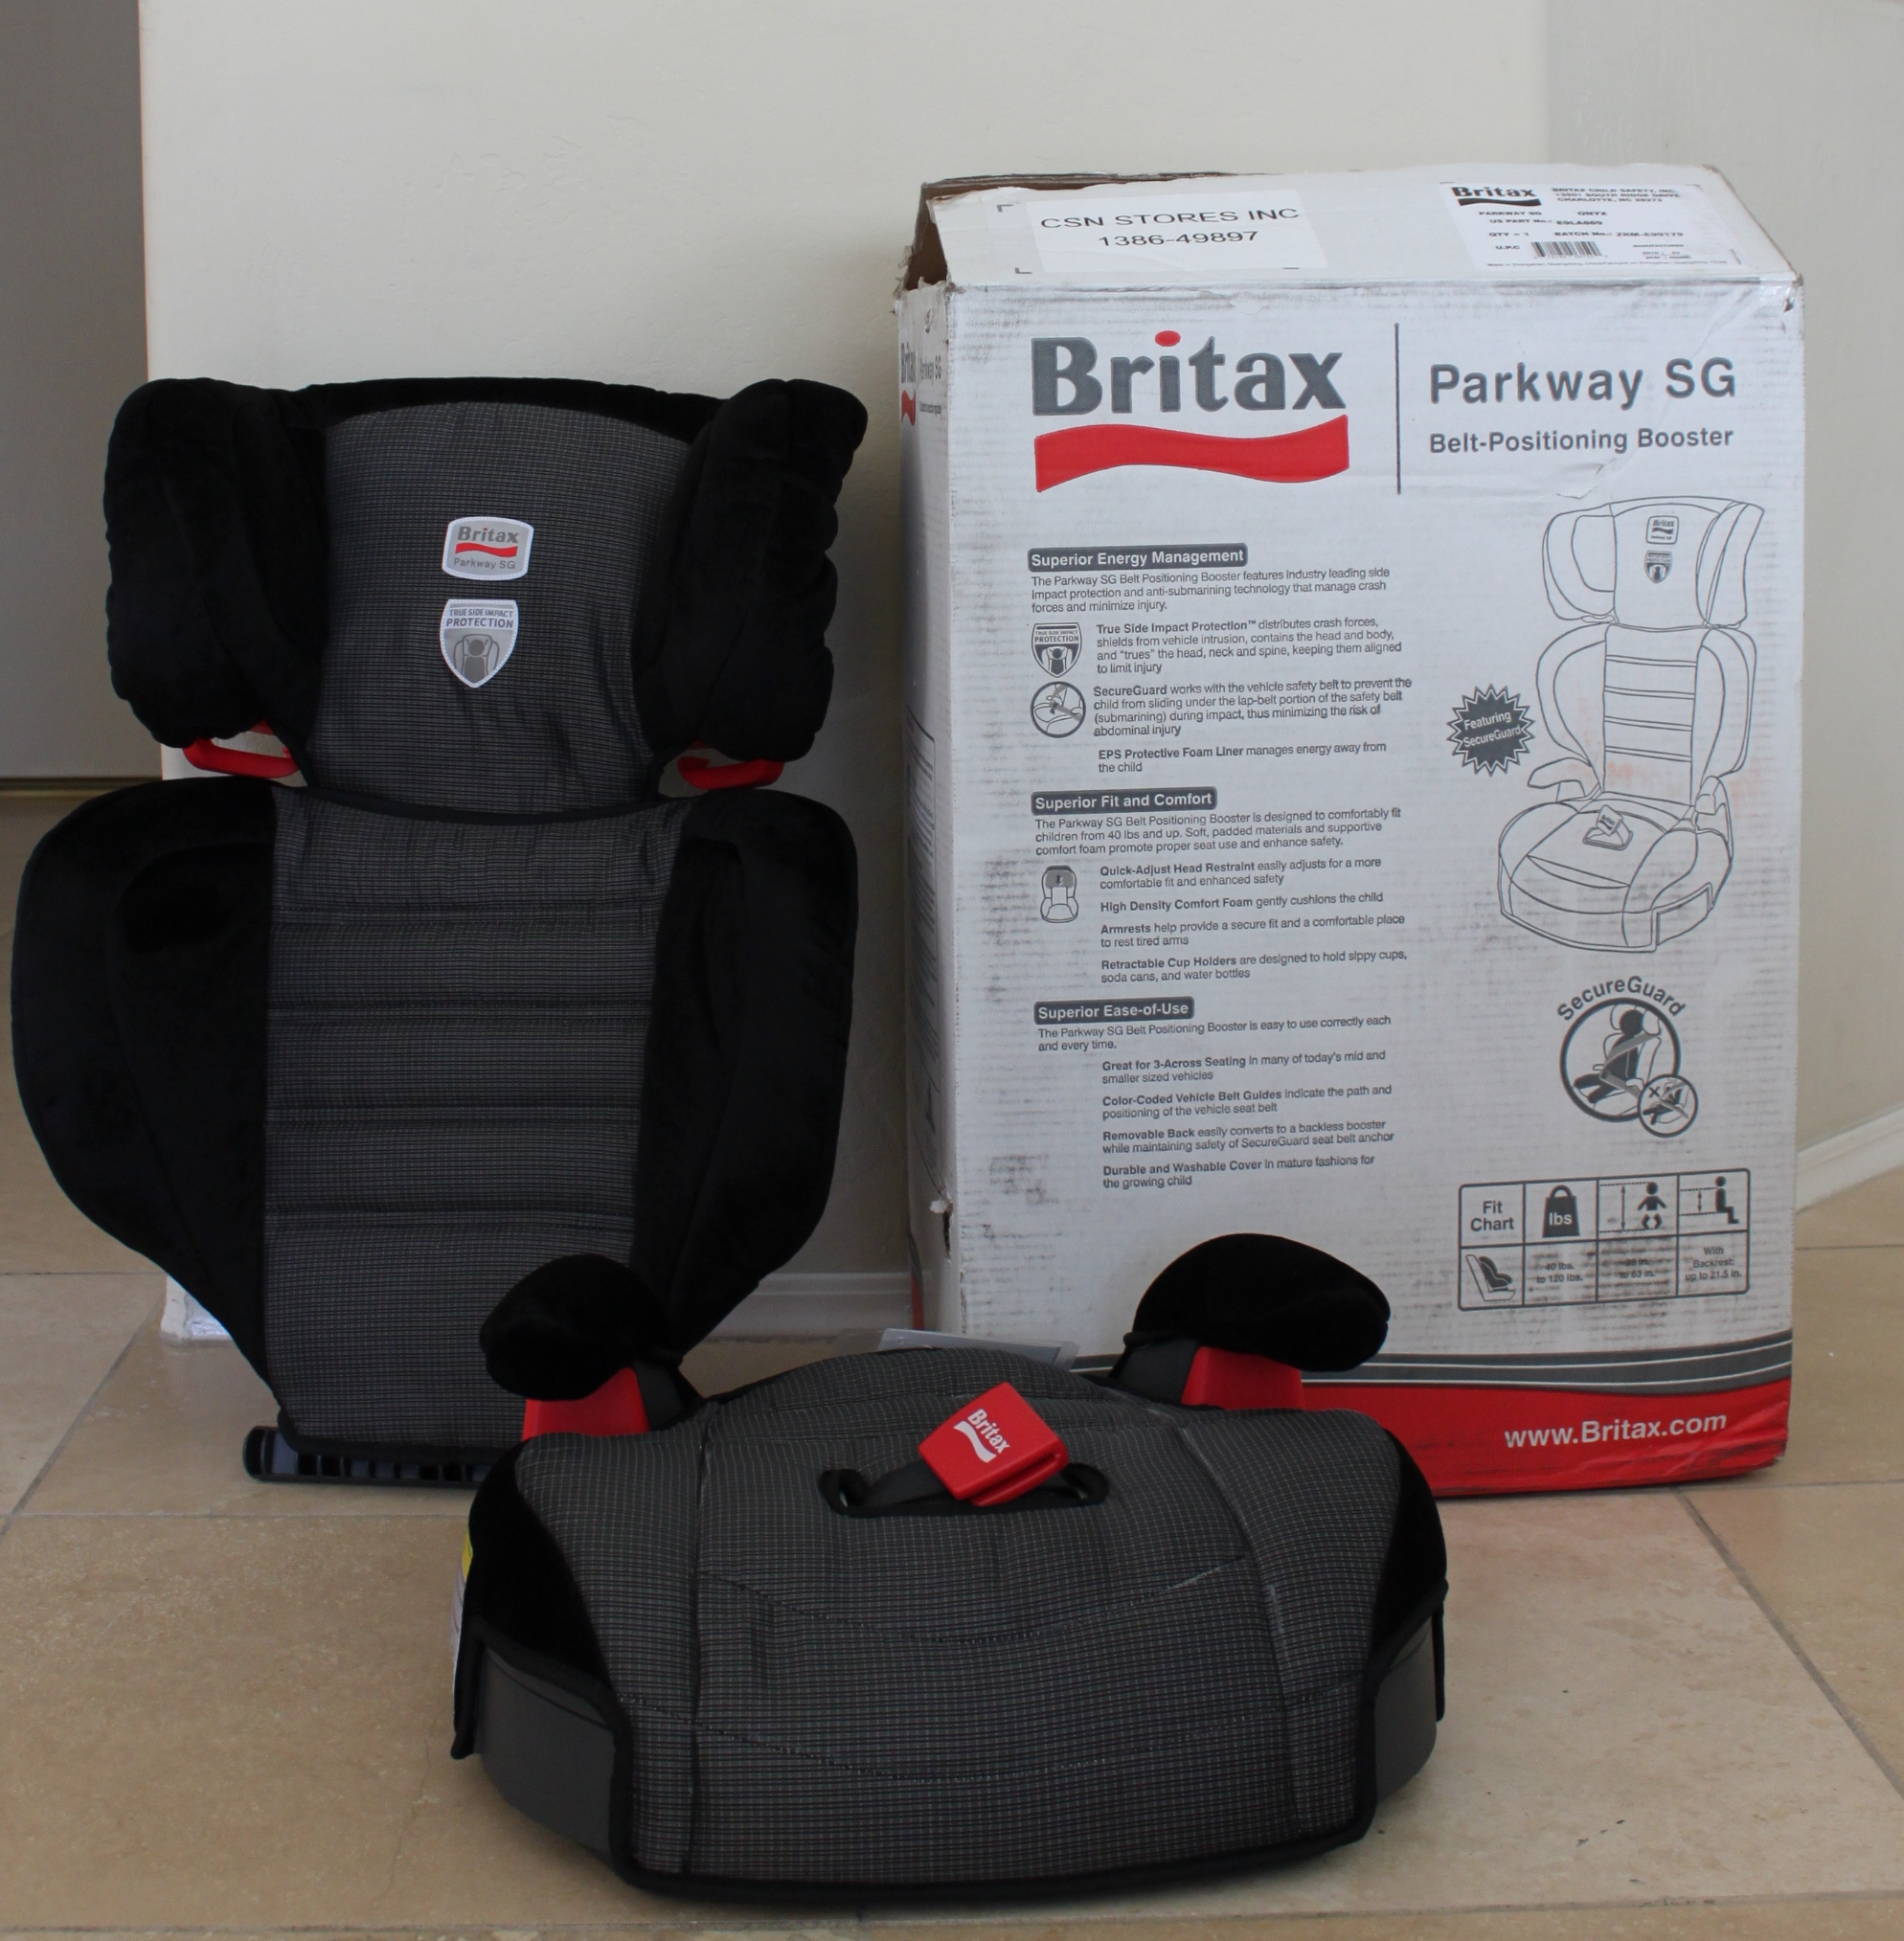 Britax Parkway SG Booster Seat Review - \